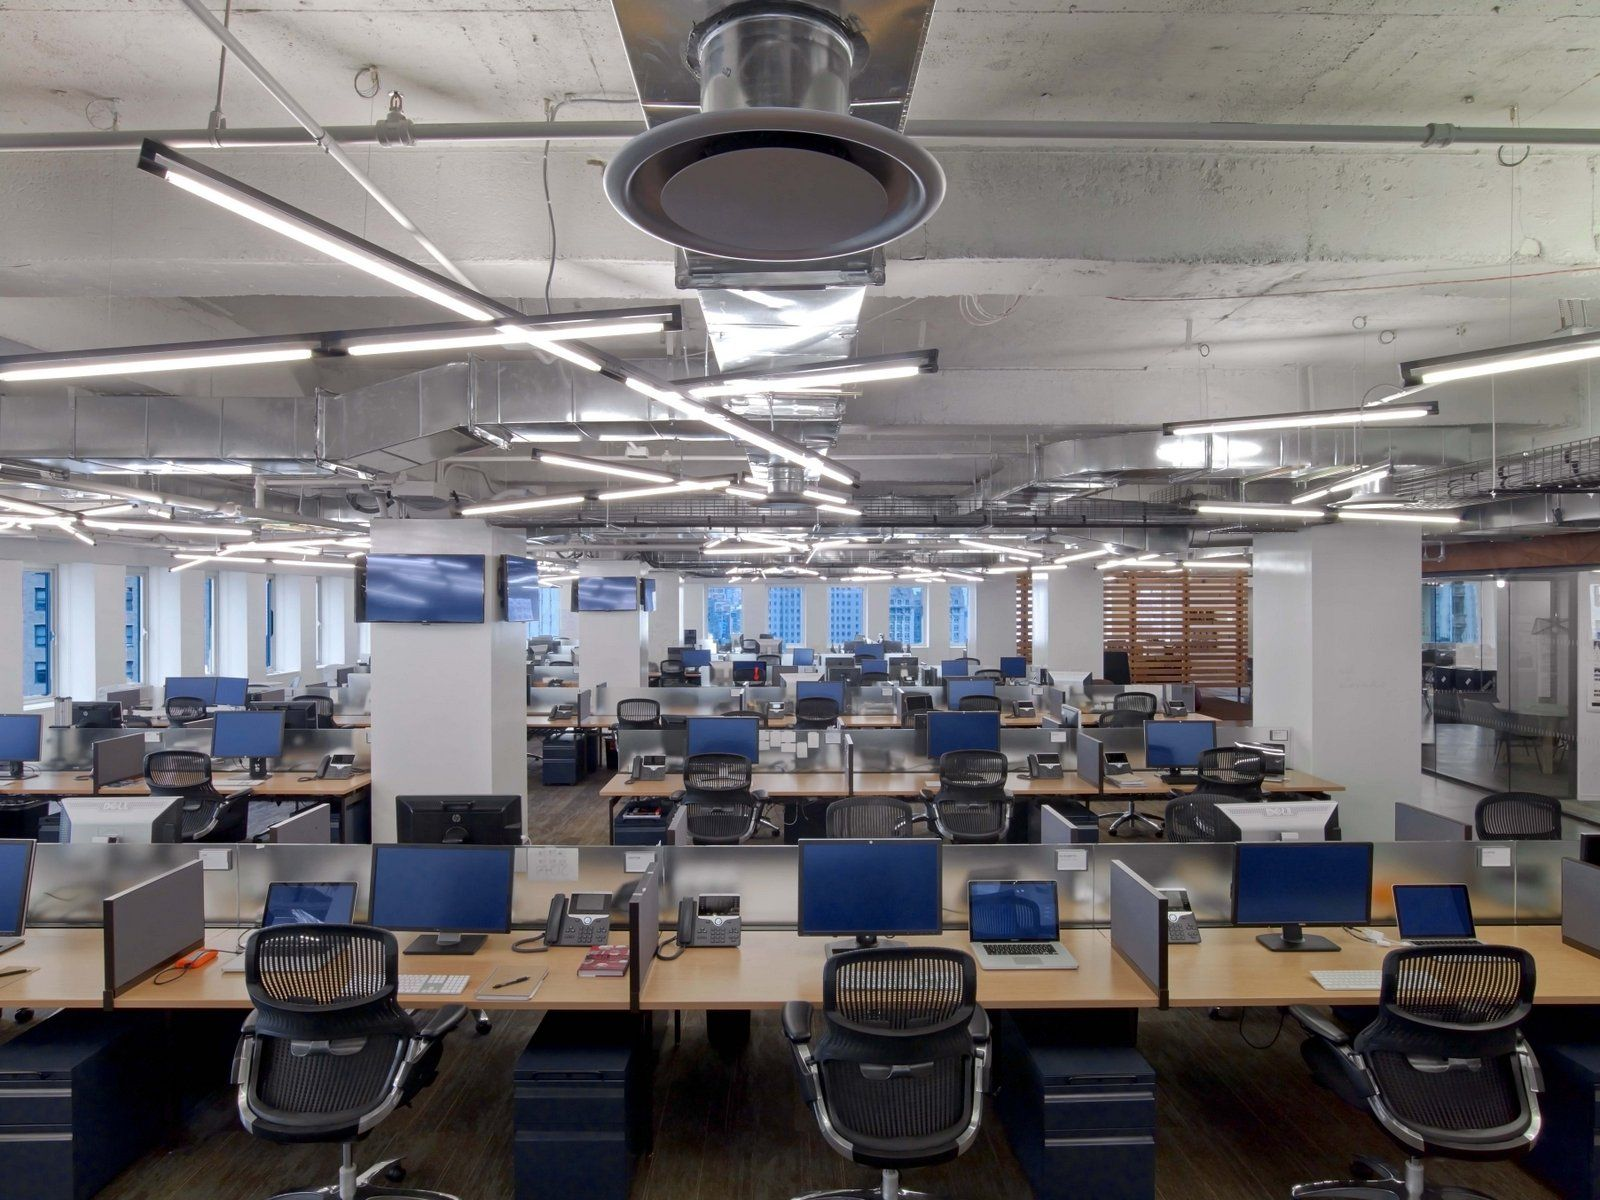 Condé Nast Entertainment Offices New York City Office Snapshots Industrial Office Design Workspace Design Office Design